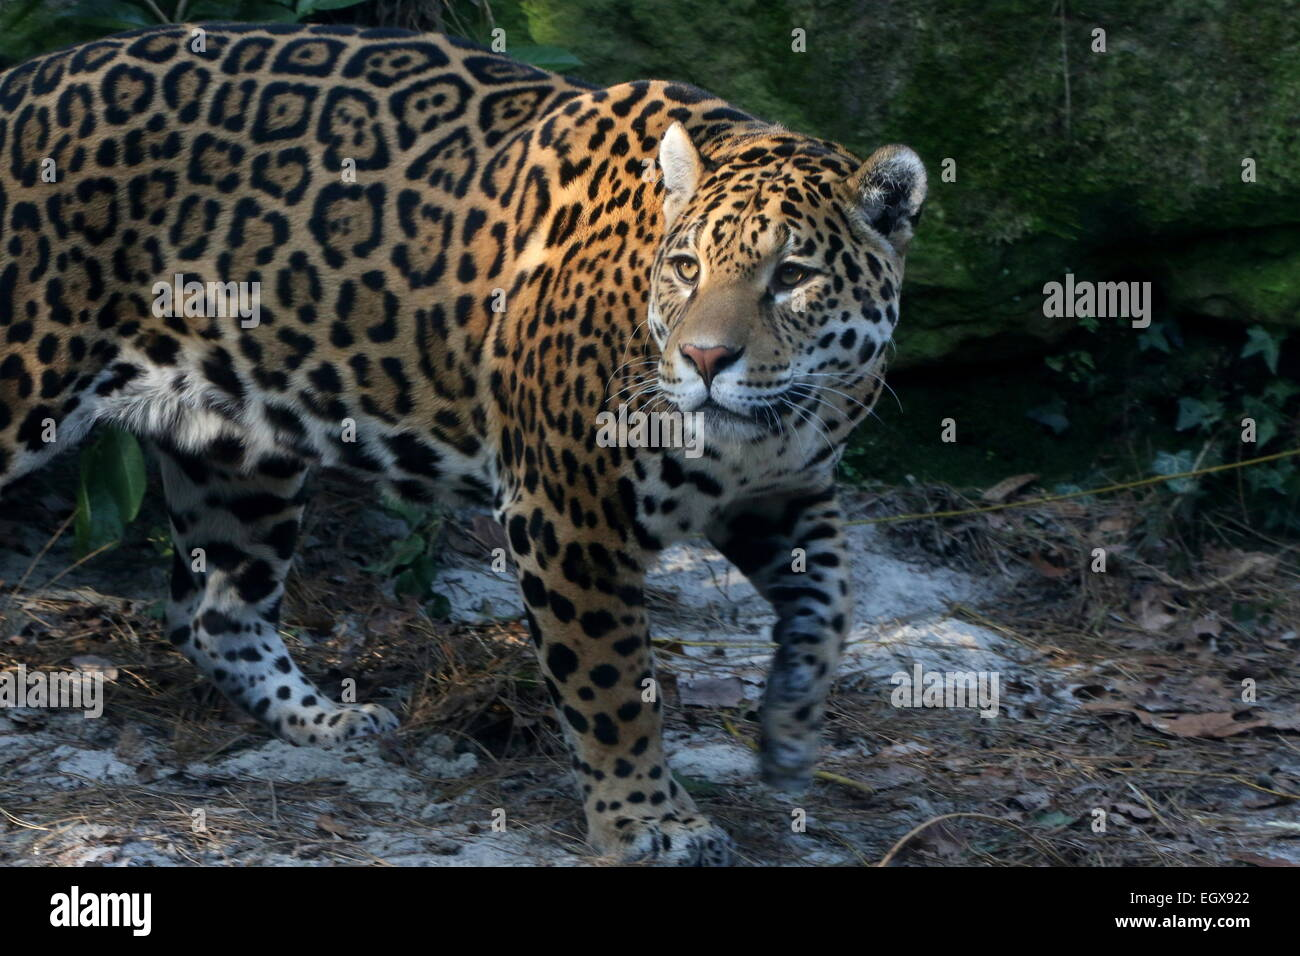 Female South American  Jaguar (Panthera onca), close-up of the head - Stock Image